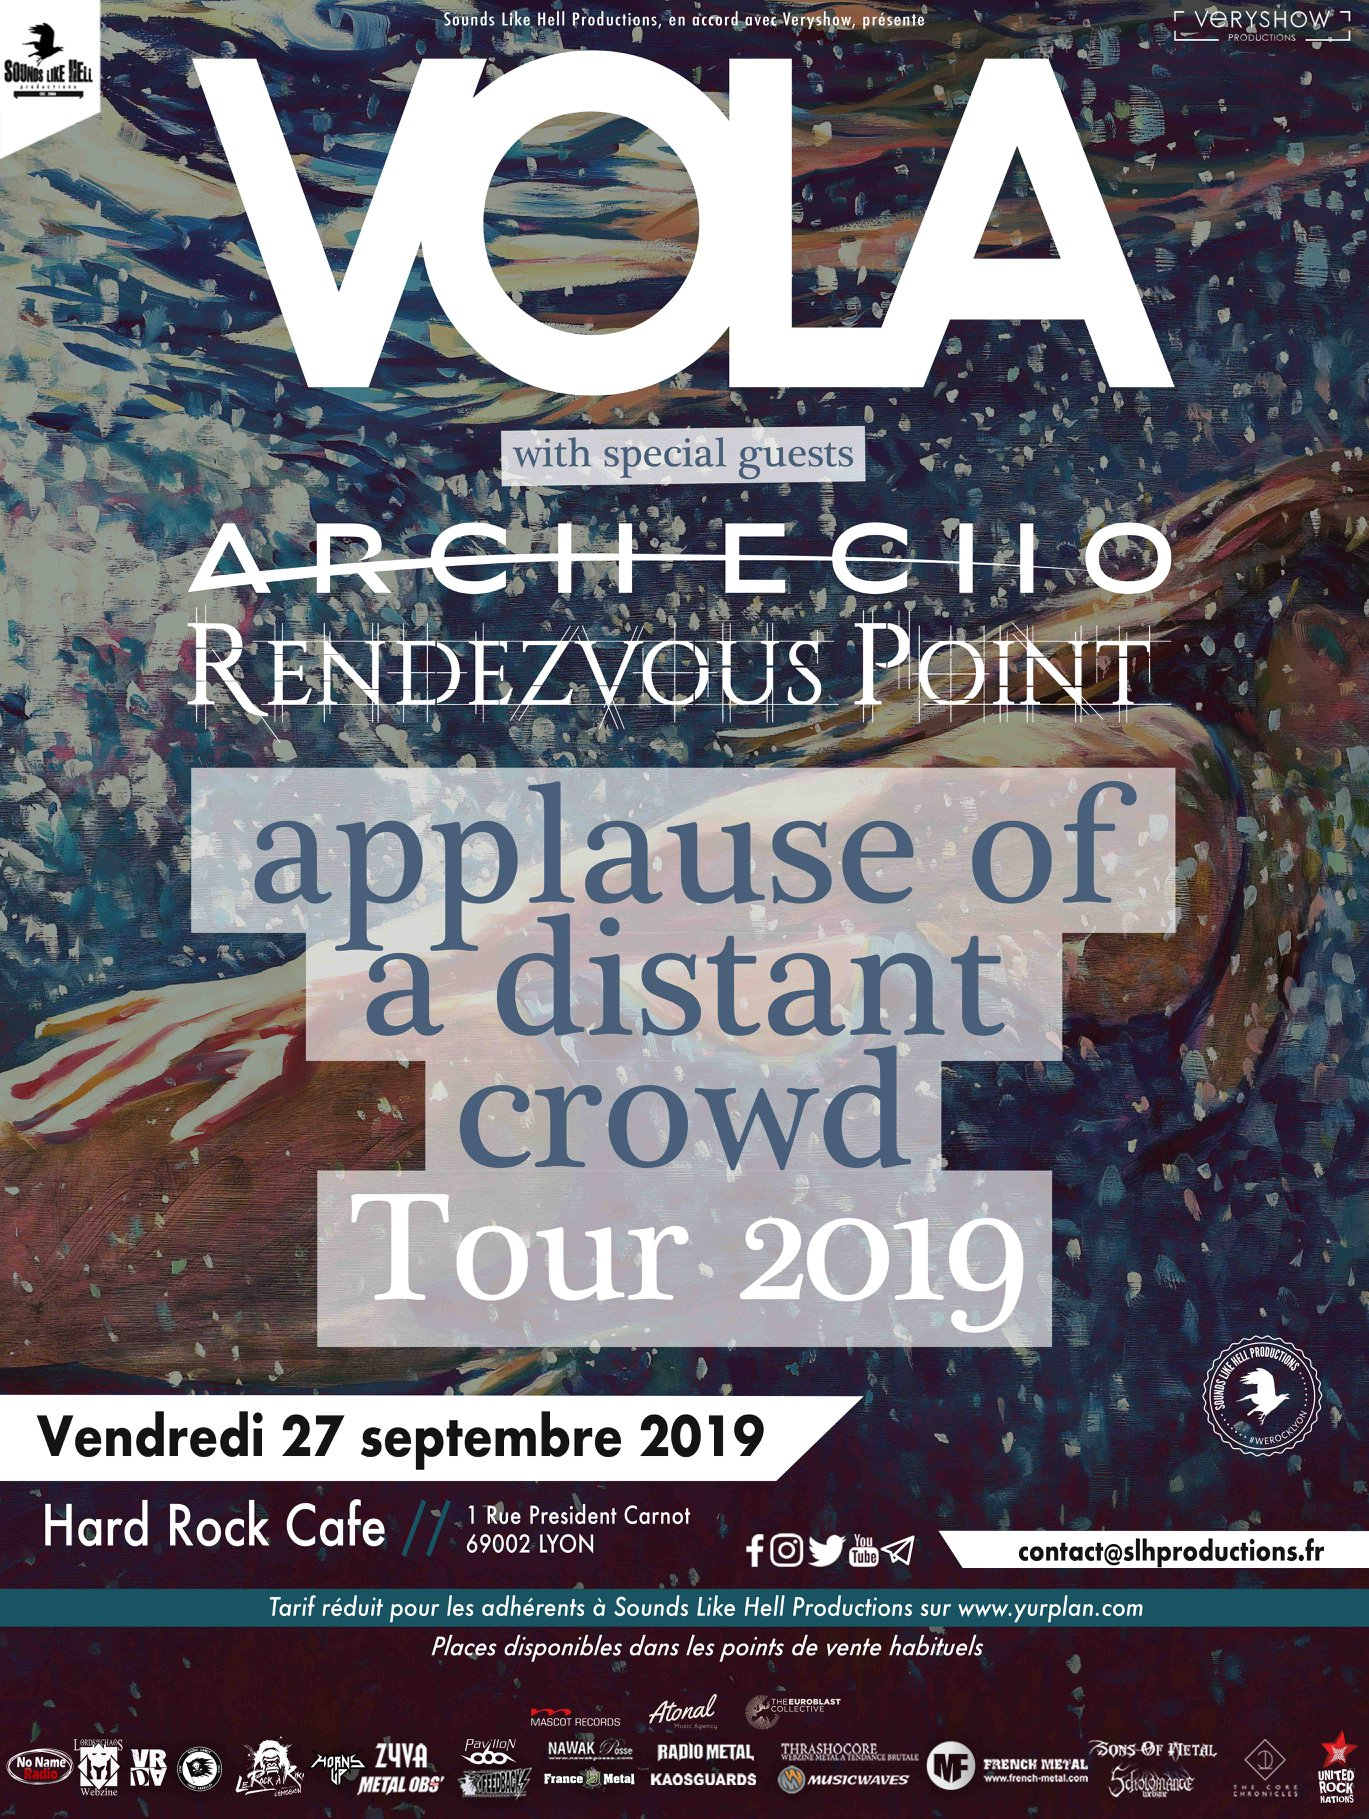 VOLA arch echo rendezvous point applause of a distant crowd tour 2019 hard rock café lyon sounds like hell productions